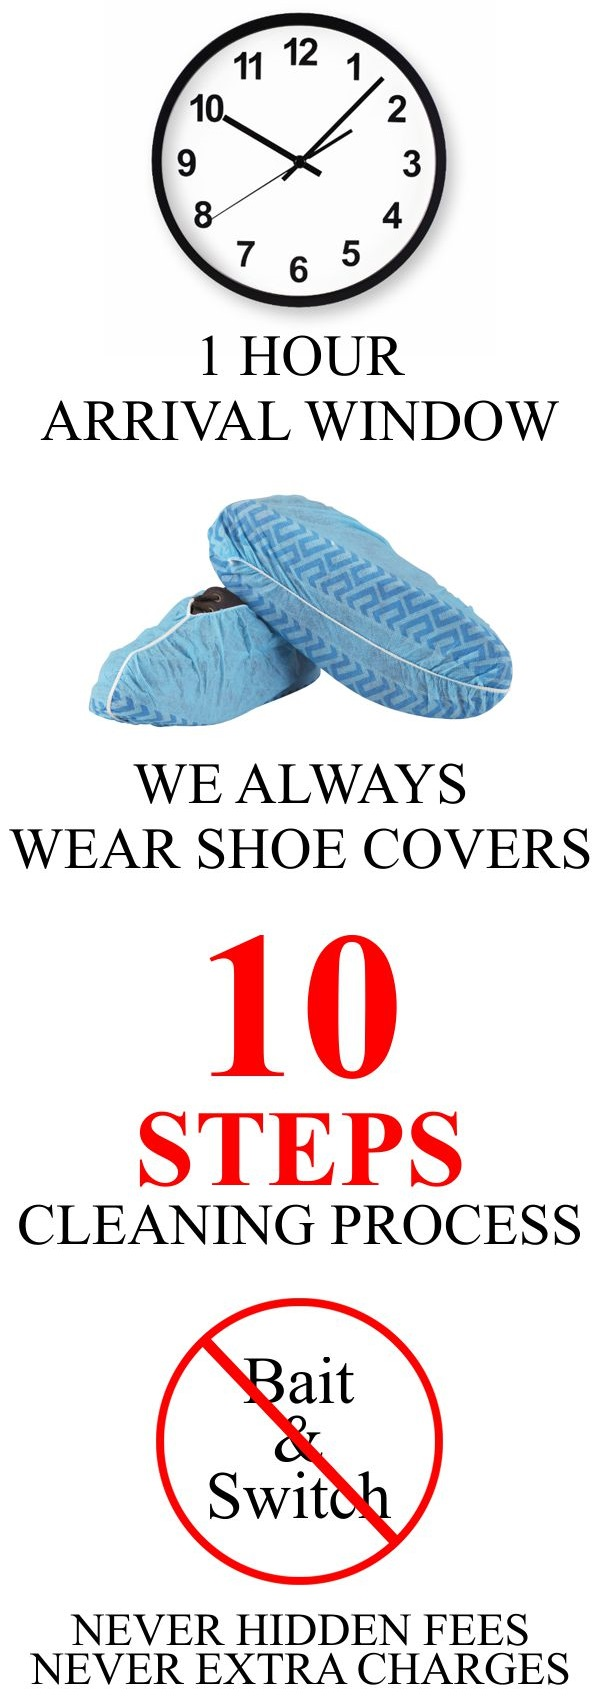 What to expect from us: 30 minutes time frame of arrival, we always wear shoe covers, 10 step cleaning process, never hidden fees, never extra charges